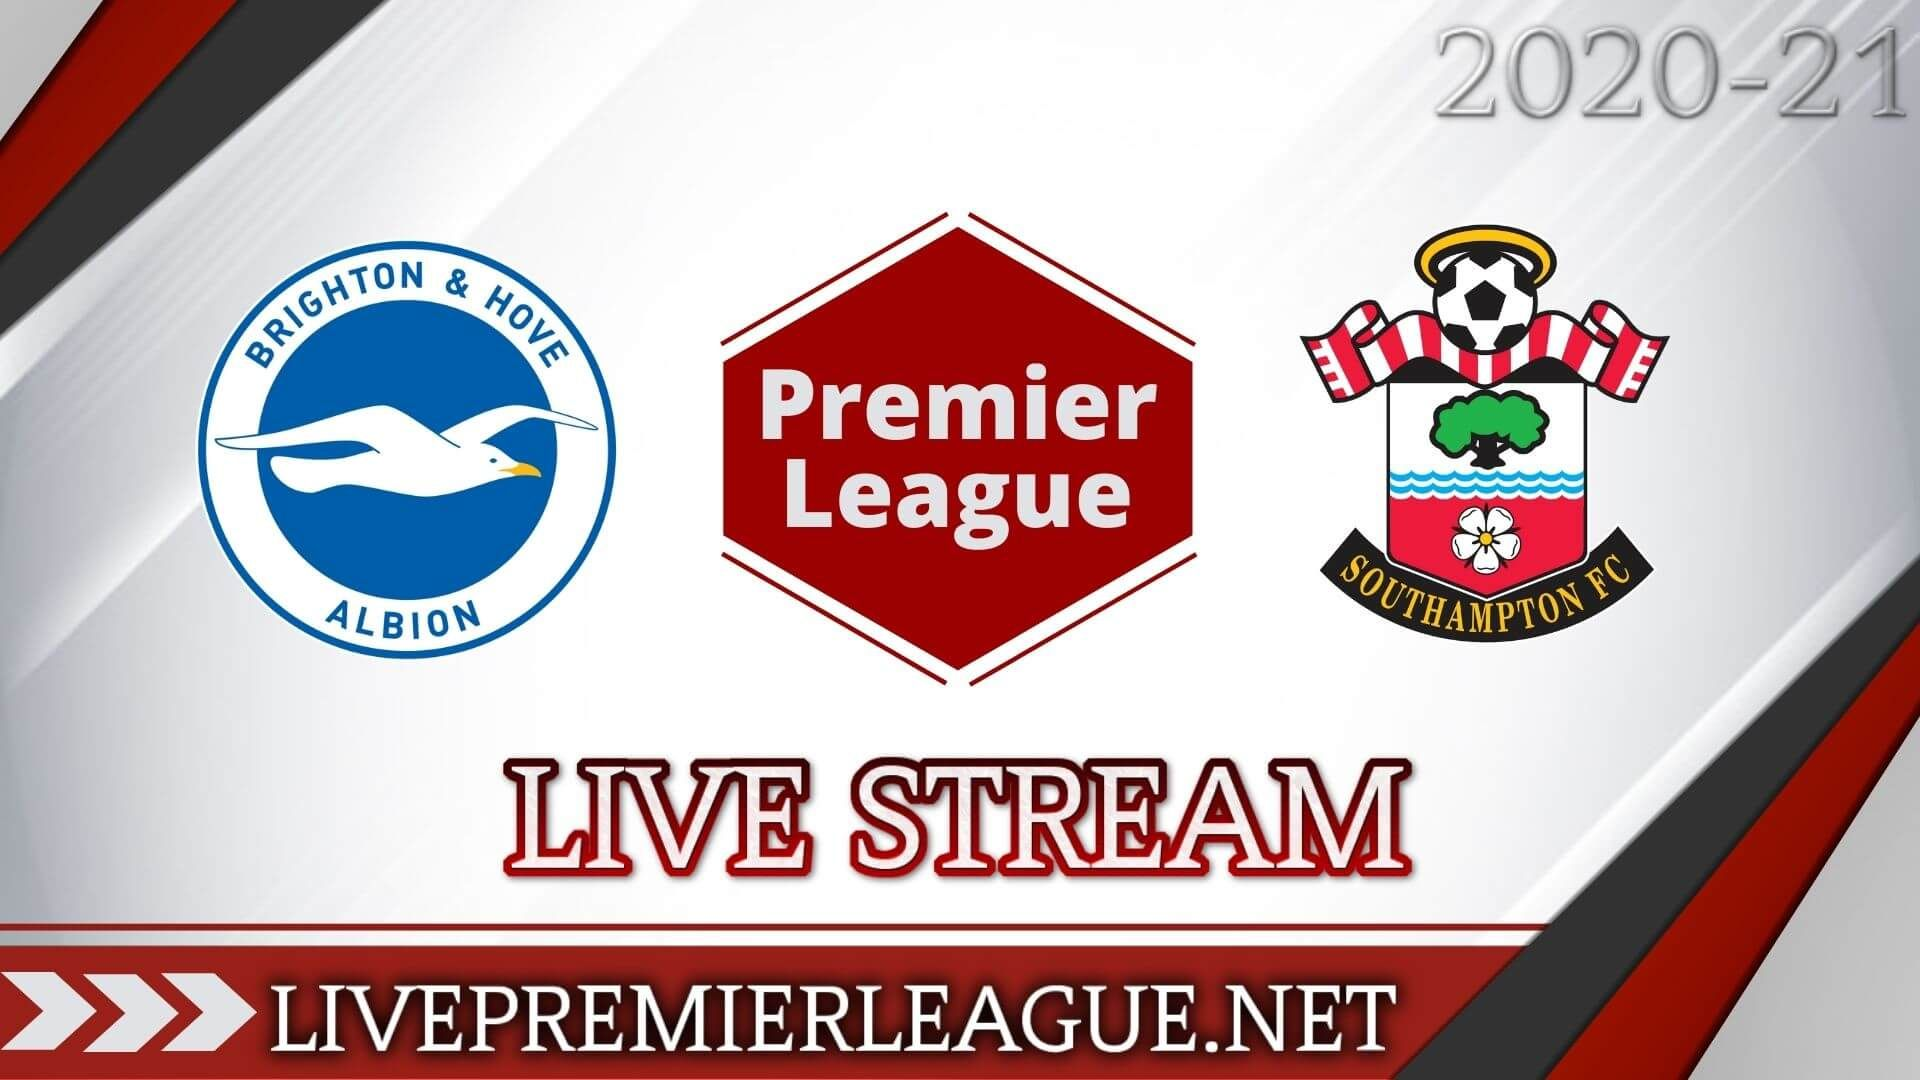 Brighton And Hove Albion Vs Southampton Live Stream 2020 Week 11 Brighton Hove Albion Brighton And Hove Albion